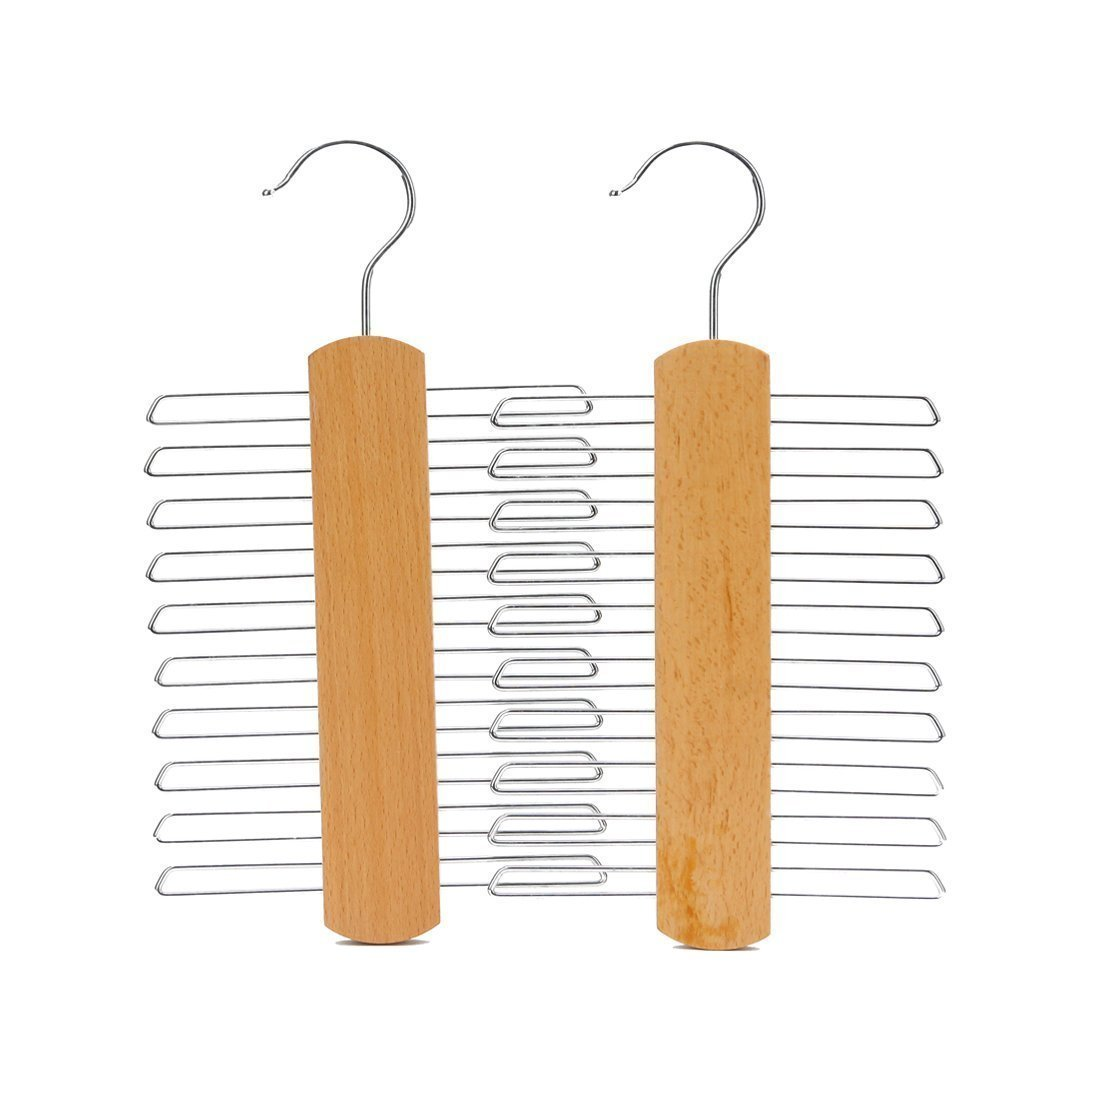 Wood Clothes Hangers for Ties and Accessories with Chrome Details Hanger J.S 2 hangers Beech Wood Tie Hangers for 20 Ties or Belts